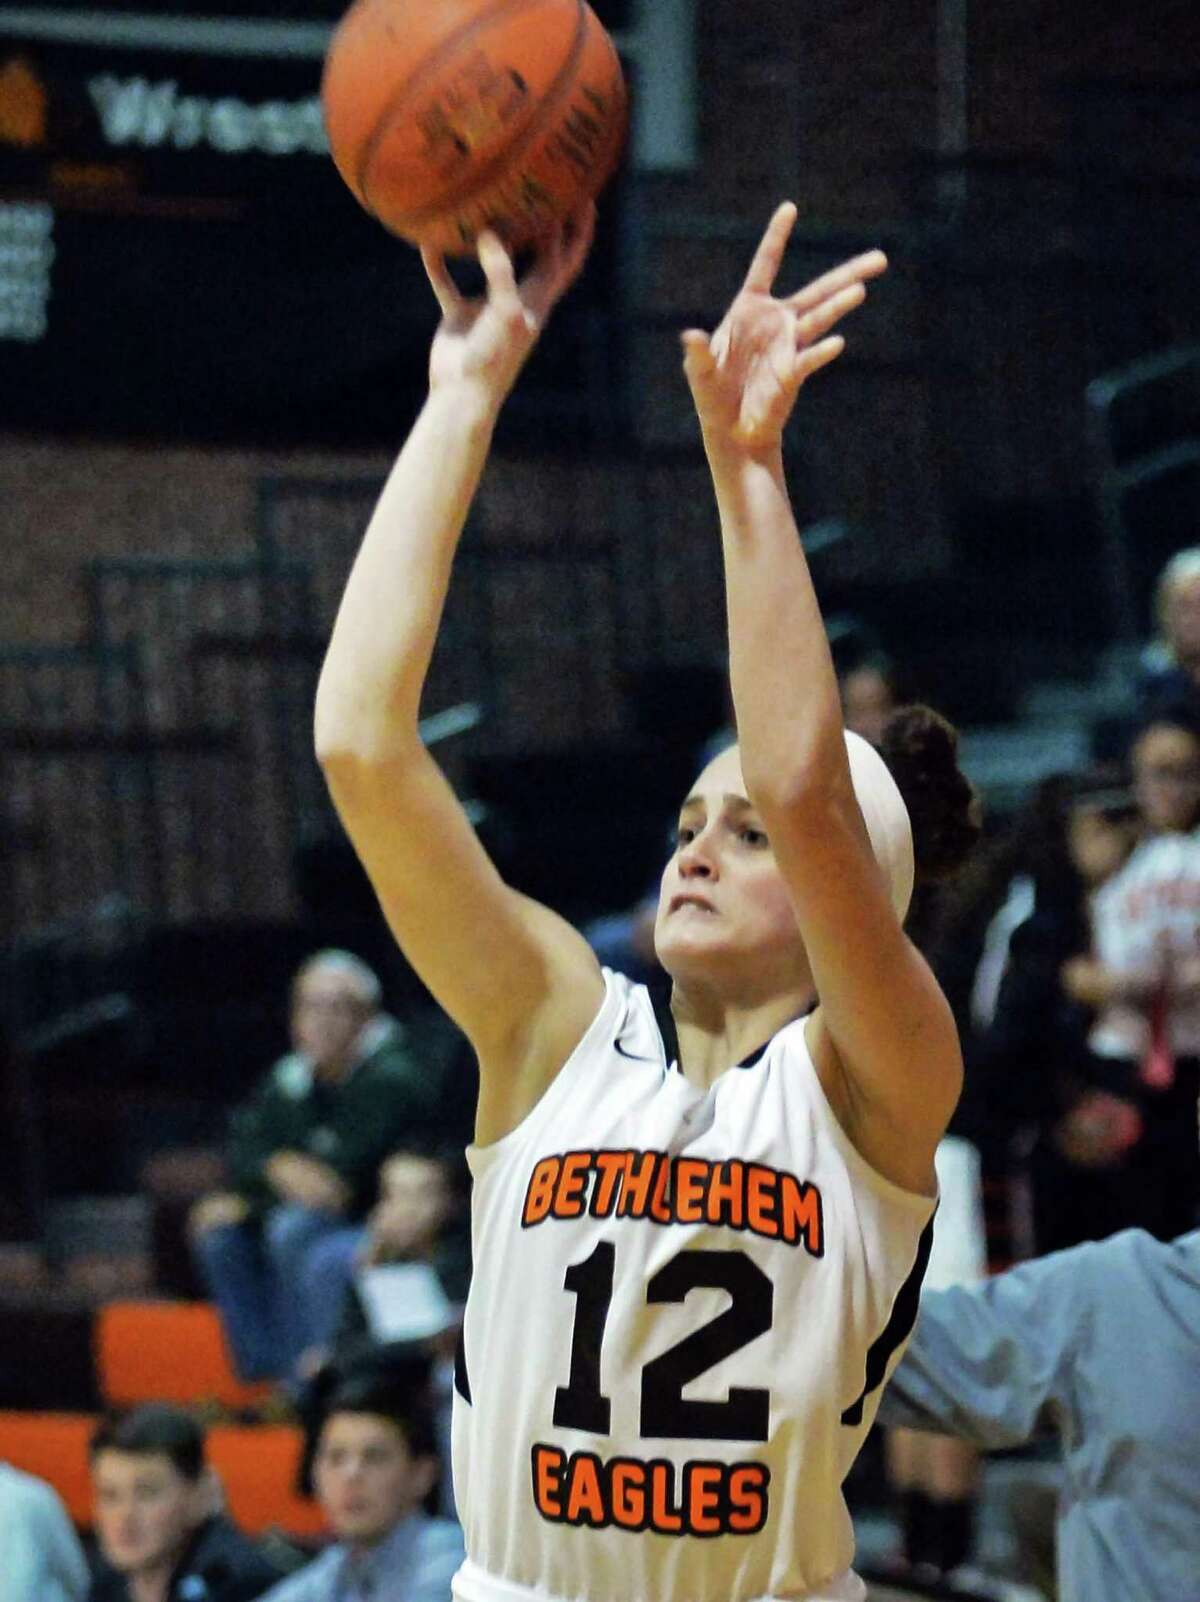 Bethlehem junior point guard Jenna Giacone during Friday's game against Shenendehowa High Dec. 12, 2014, in Delmar, NY. (John Carl D'Annibale / Times Union)